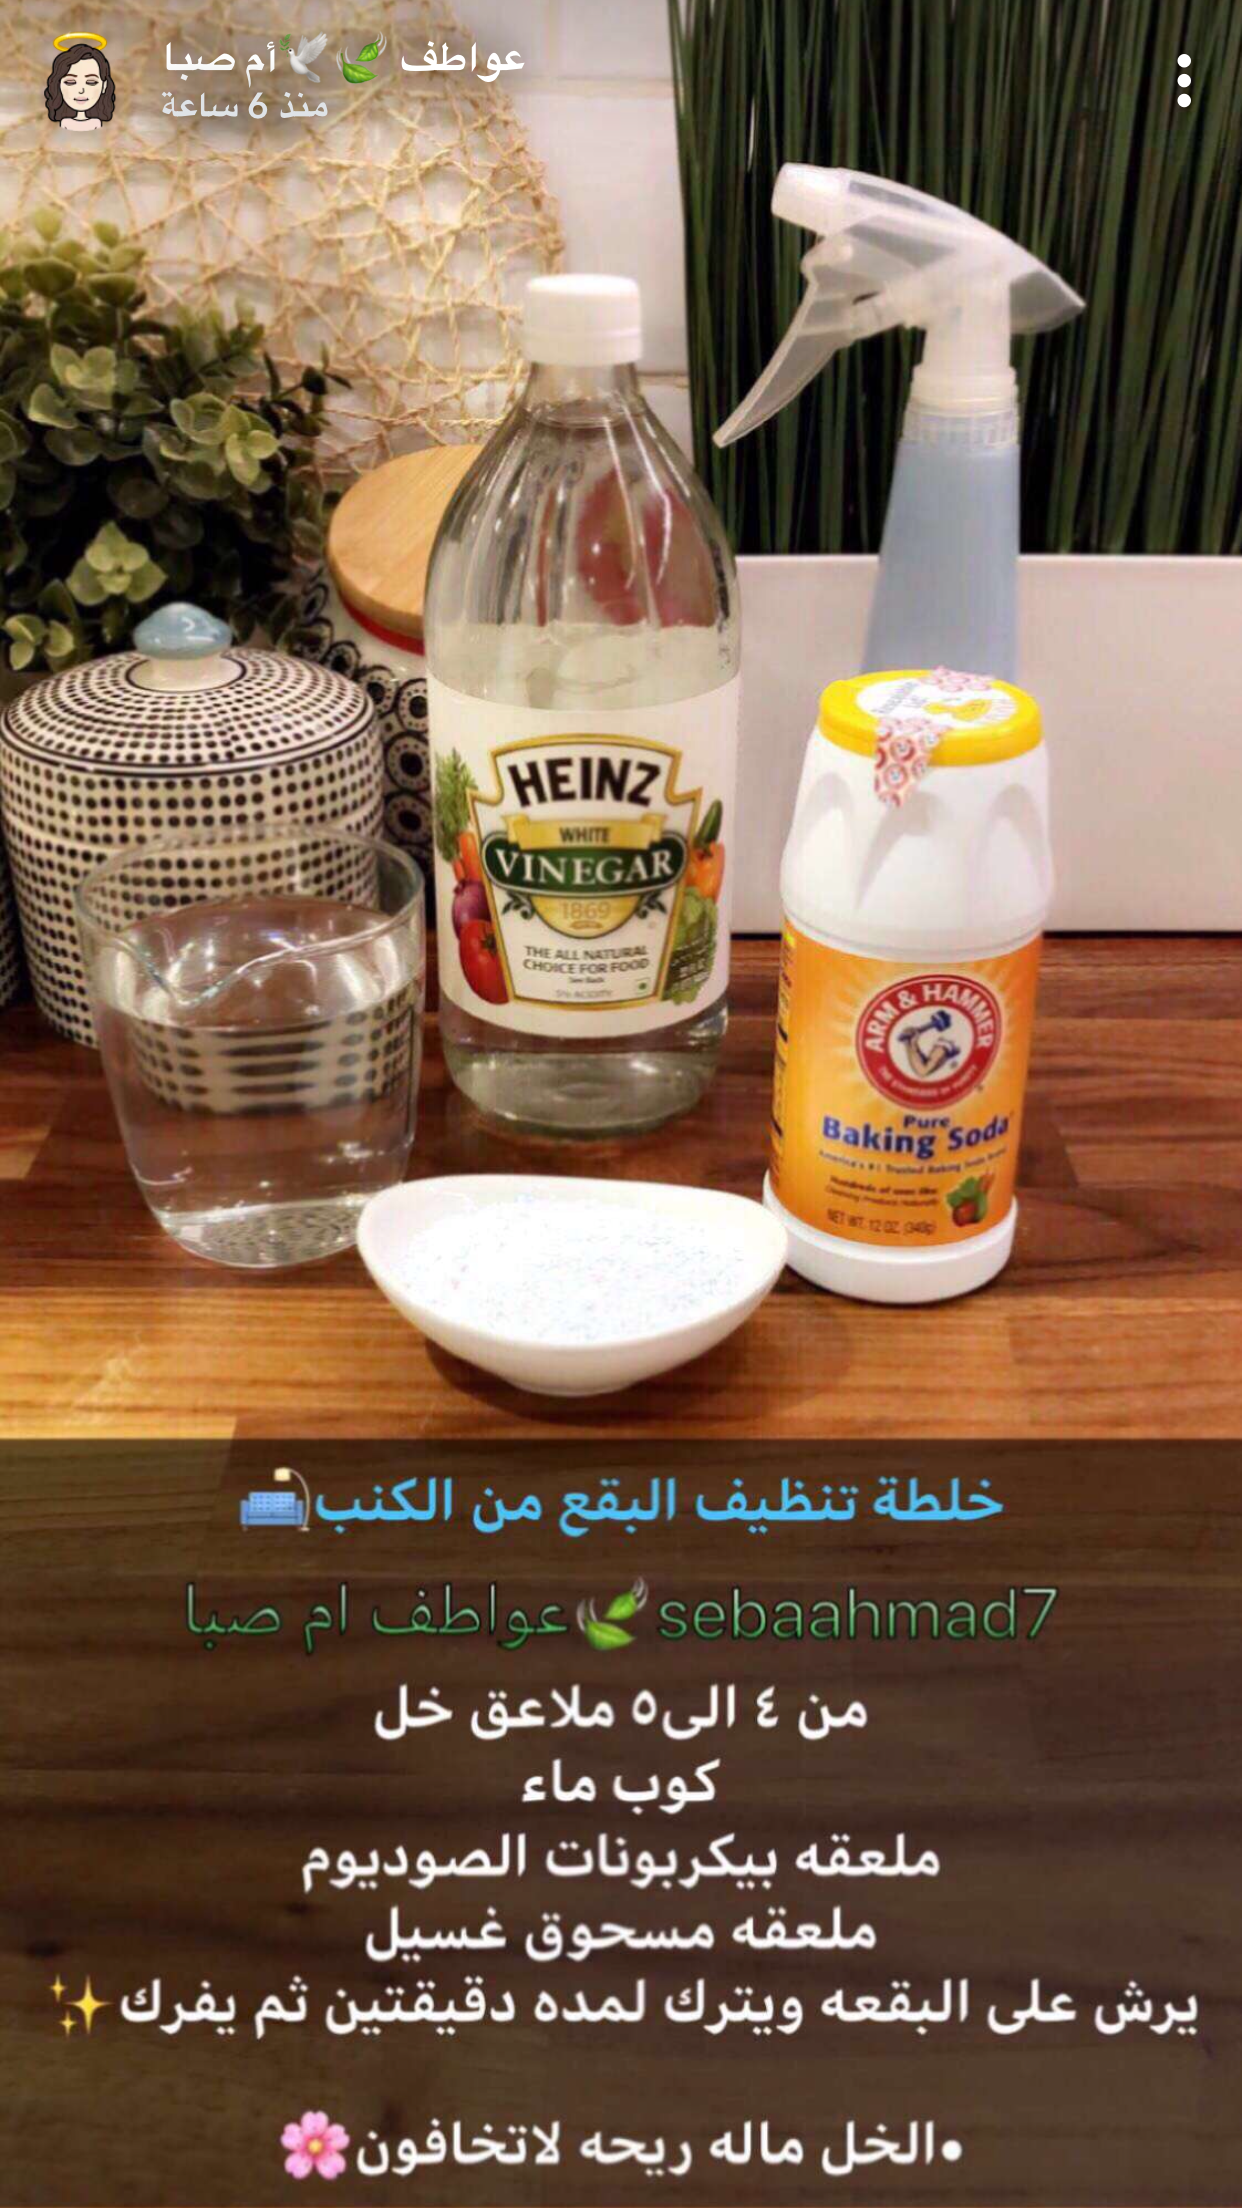 Pin By Arwa On ازاله البقع Cleaning Recipes House Cleaning Checklist Diy Home Cleaning